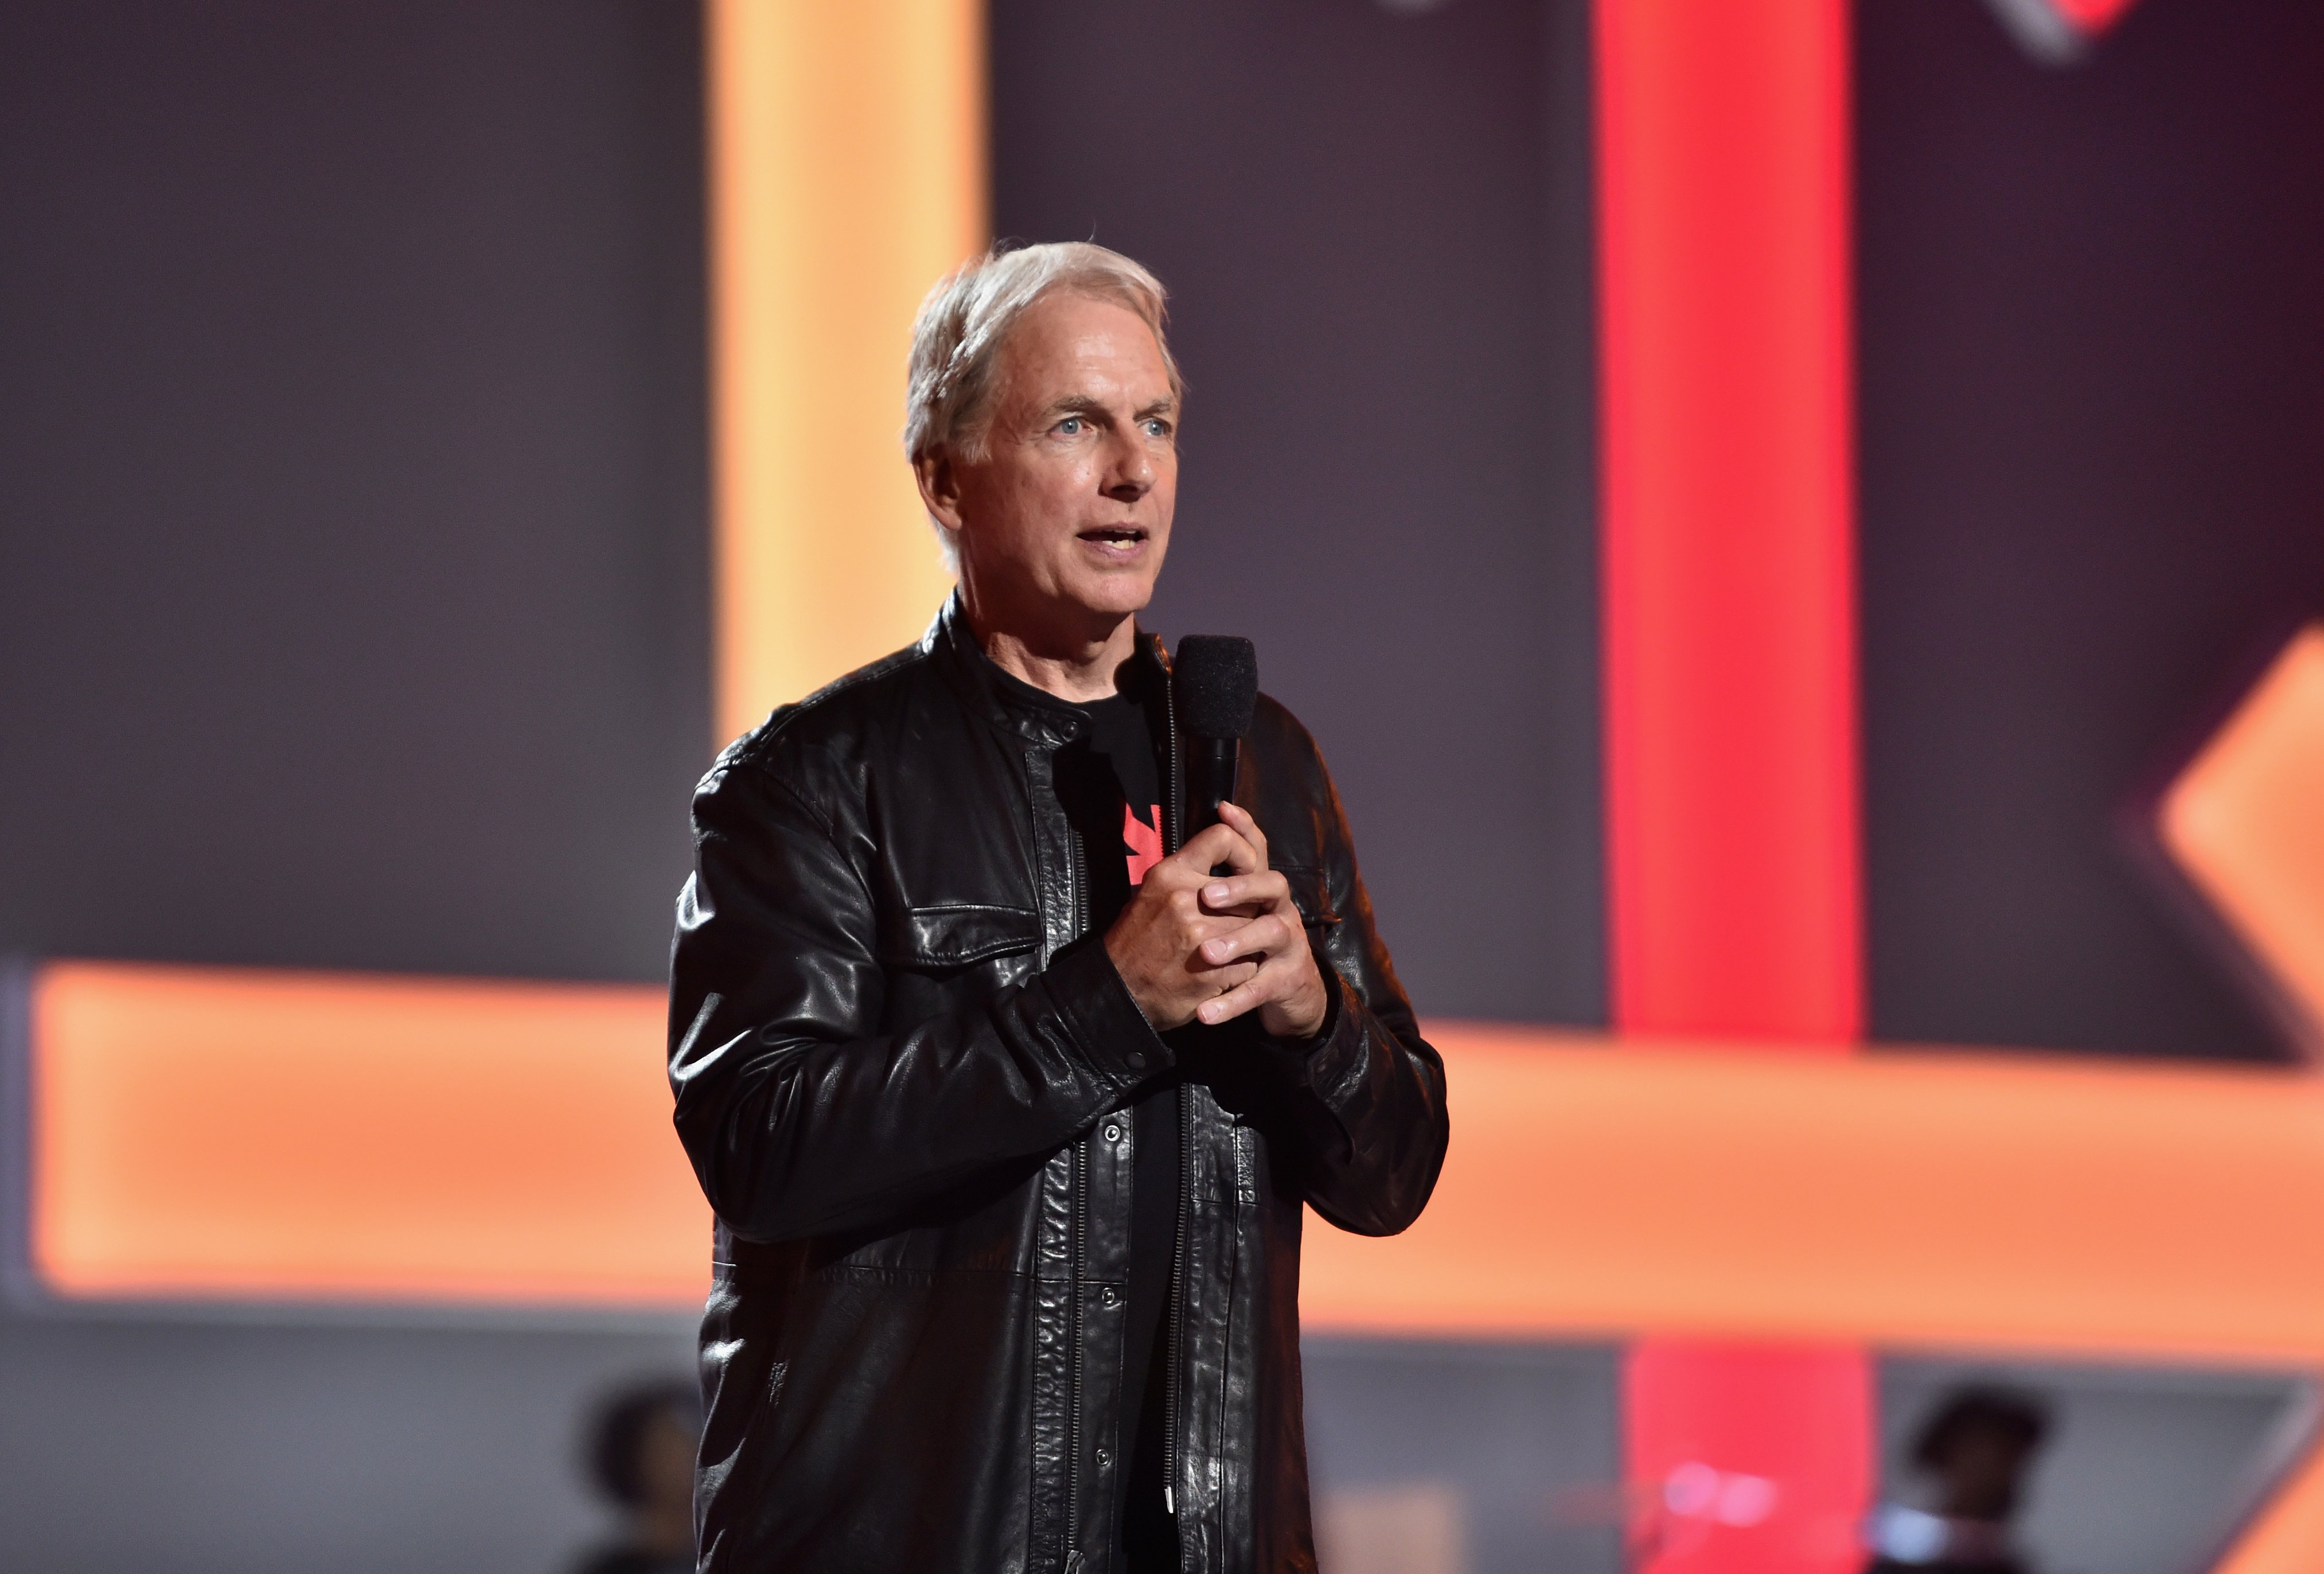 Mark Harmon speaks onstage at the sixth biennial Stand Up To Cancer (SU2C) telecast at the Barkar Hangar on Friday, September 7, 2018. | Source: Getty Images